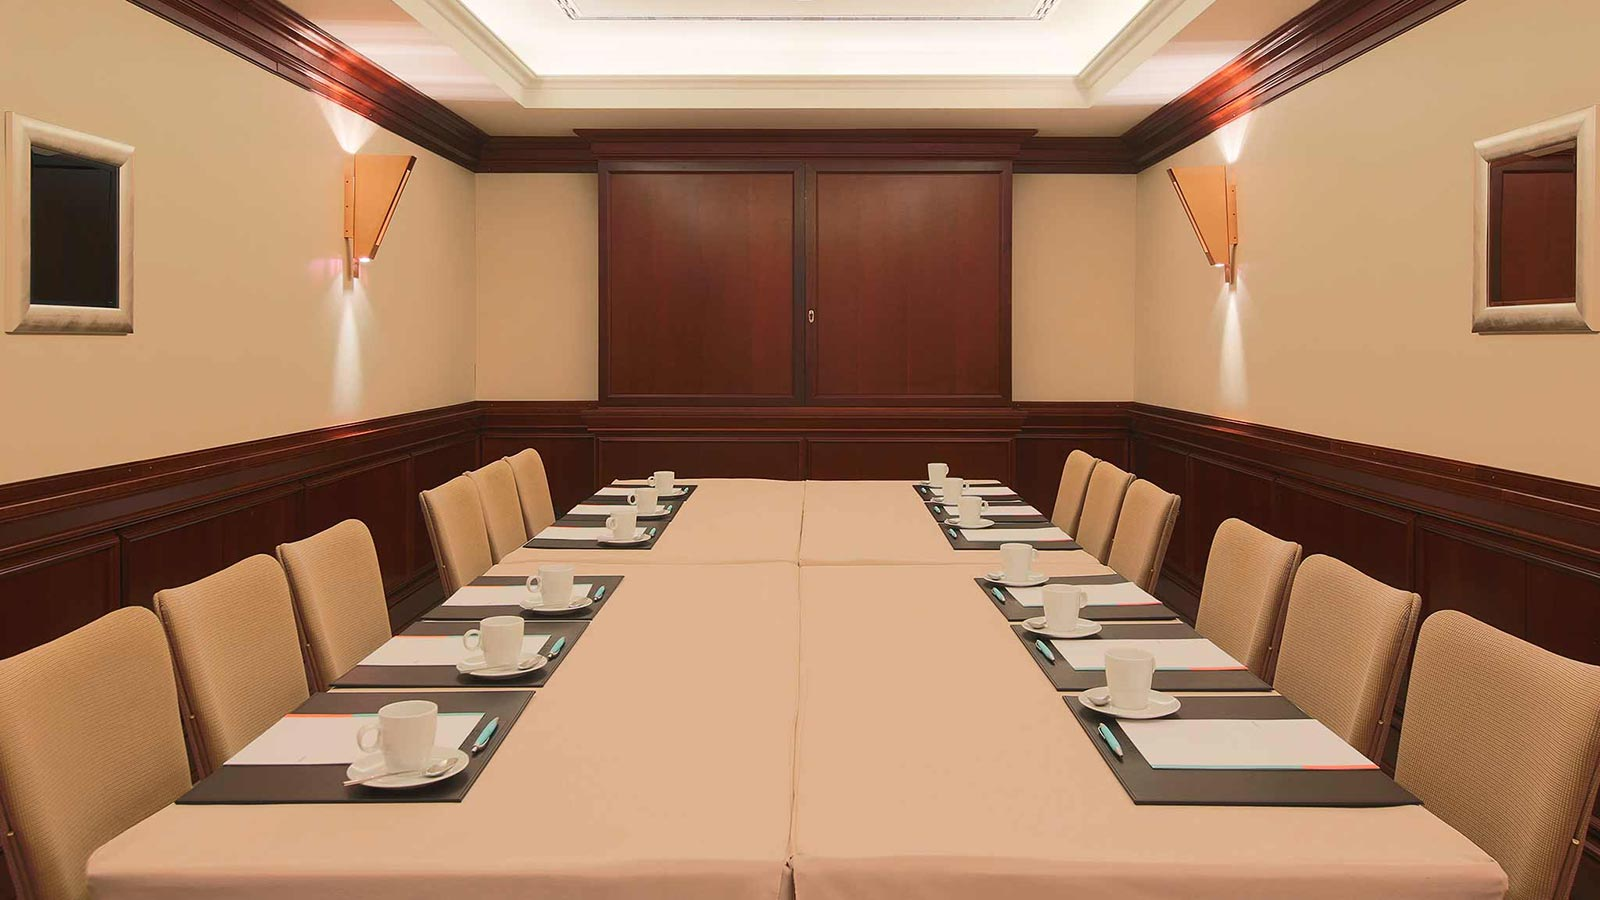 Meeting room Paris for your conference in Stuttgart - Le Méridien hotel